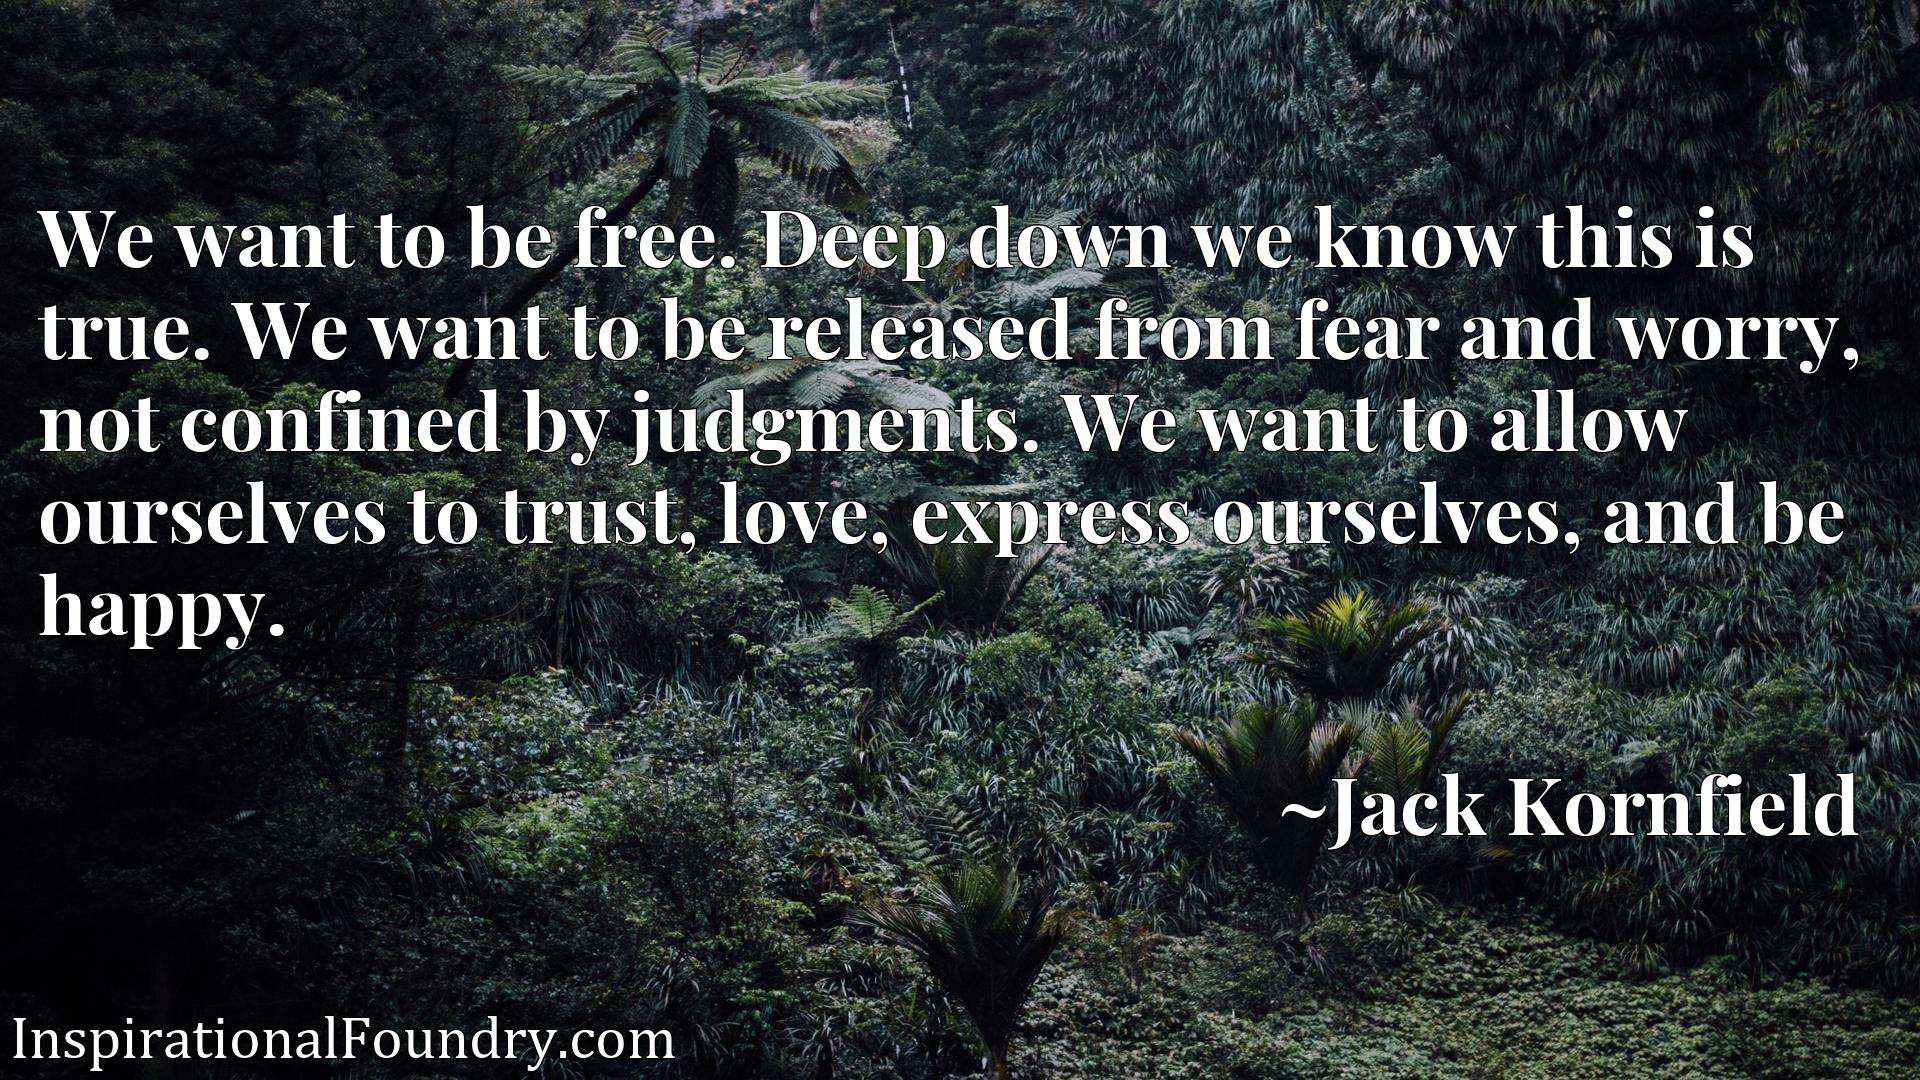 We want to be free. Deep down we know this is true. We want to be released from fear and worry, not confined by judgments. We want to allow ourselves to trust, love, express ourselves, and be happy.